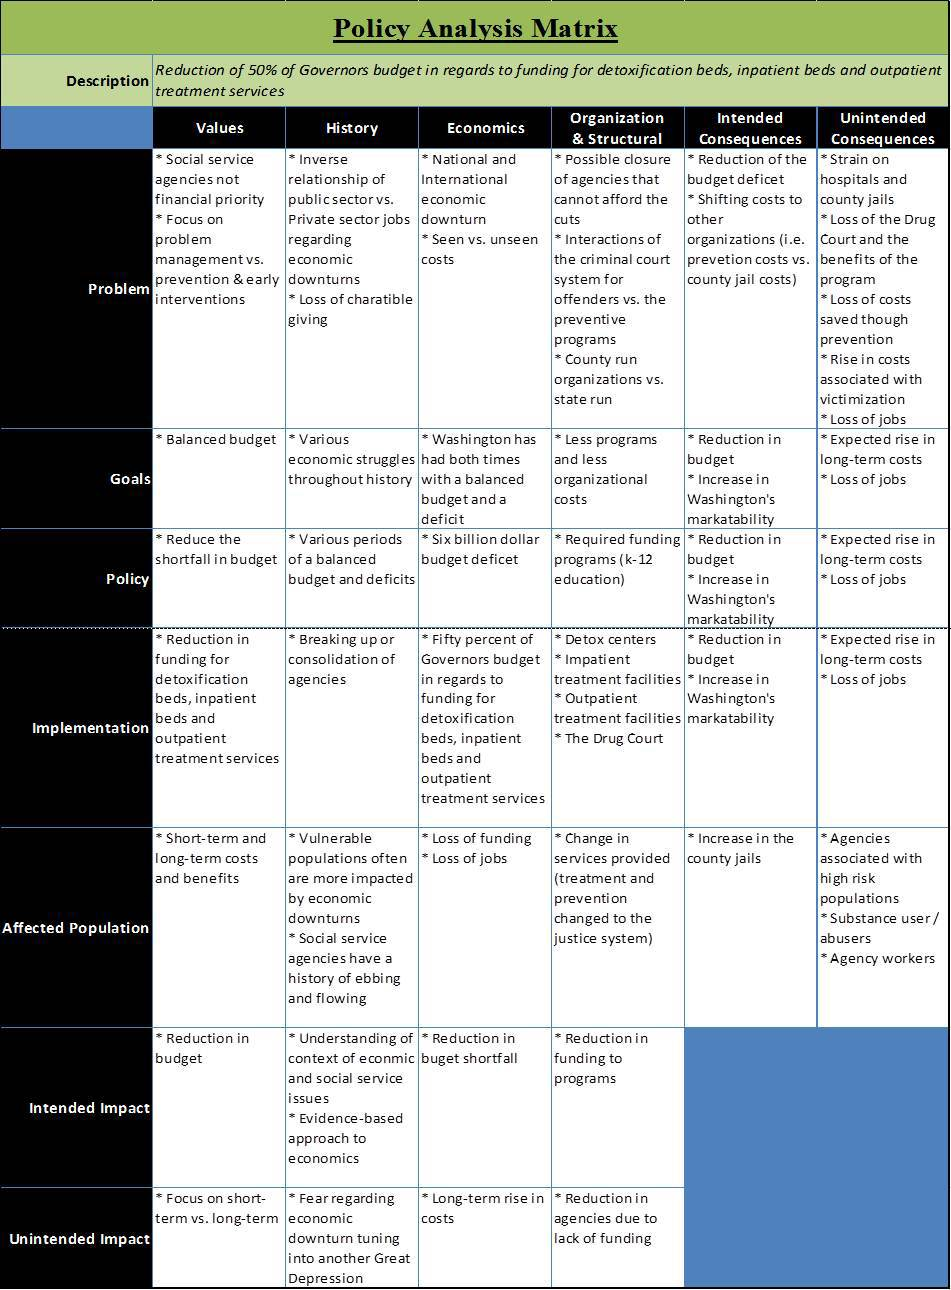 A table demonstrating an example of a policy analysis matrix